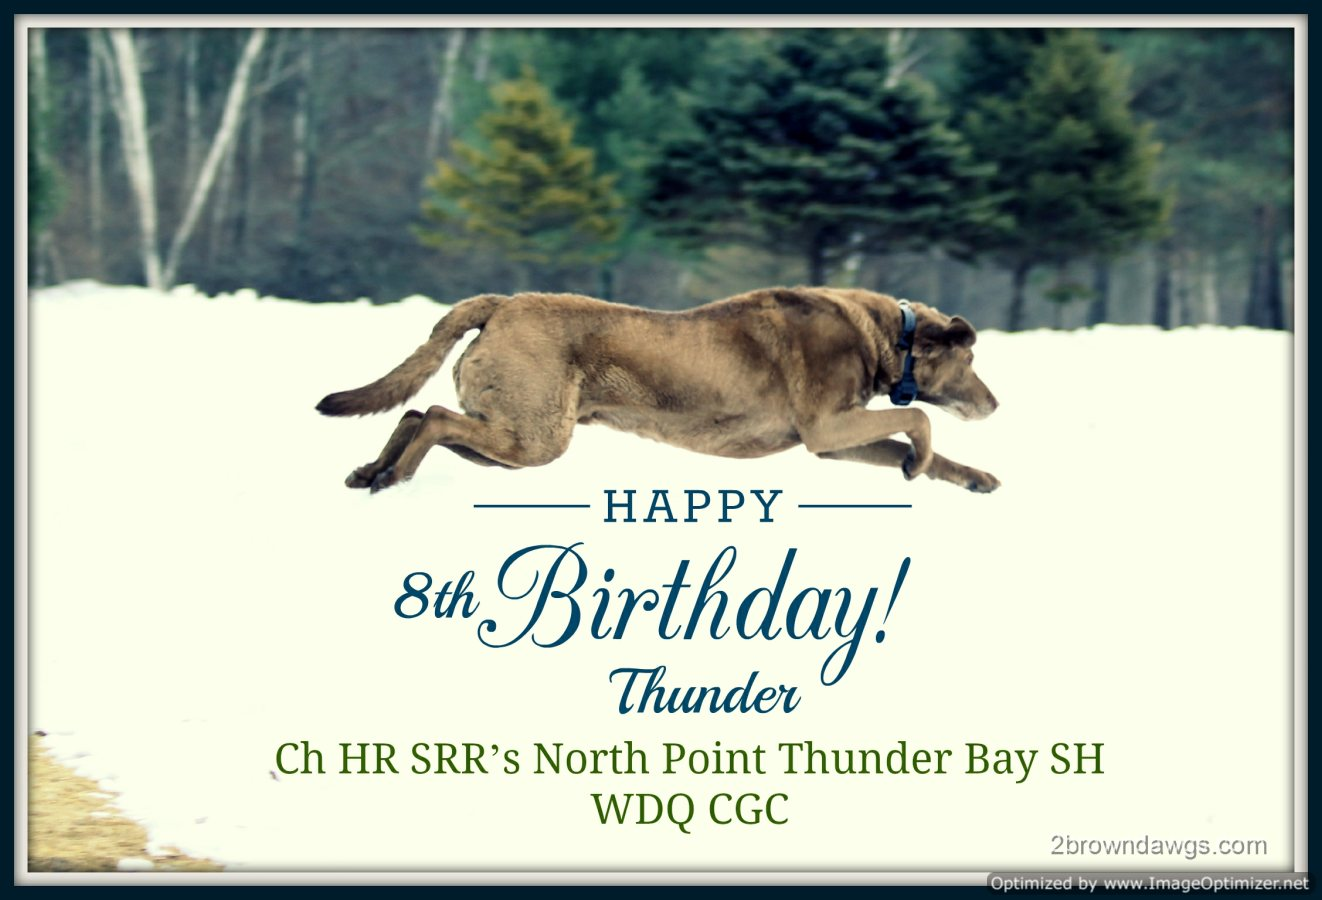 20140309-Thunder 8th Birthday